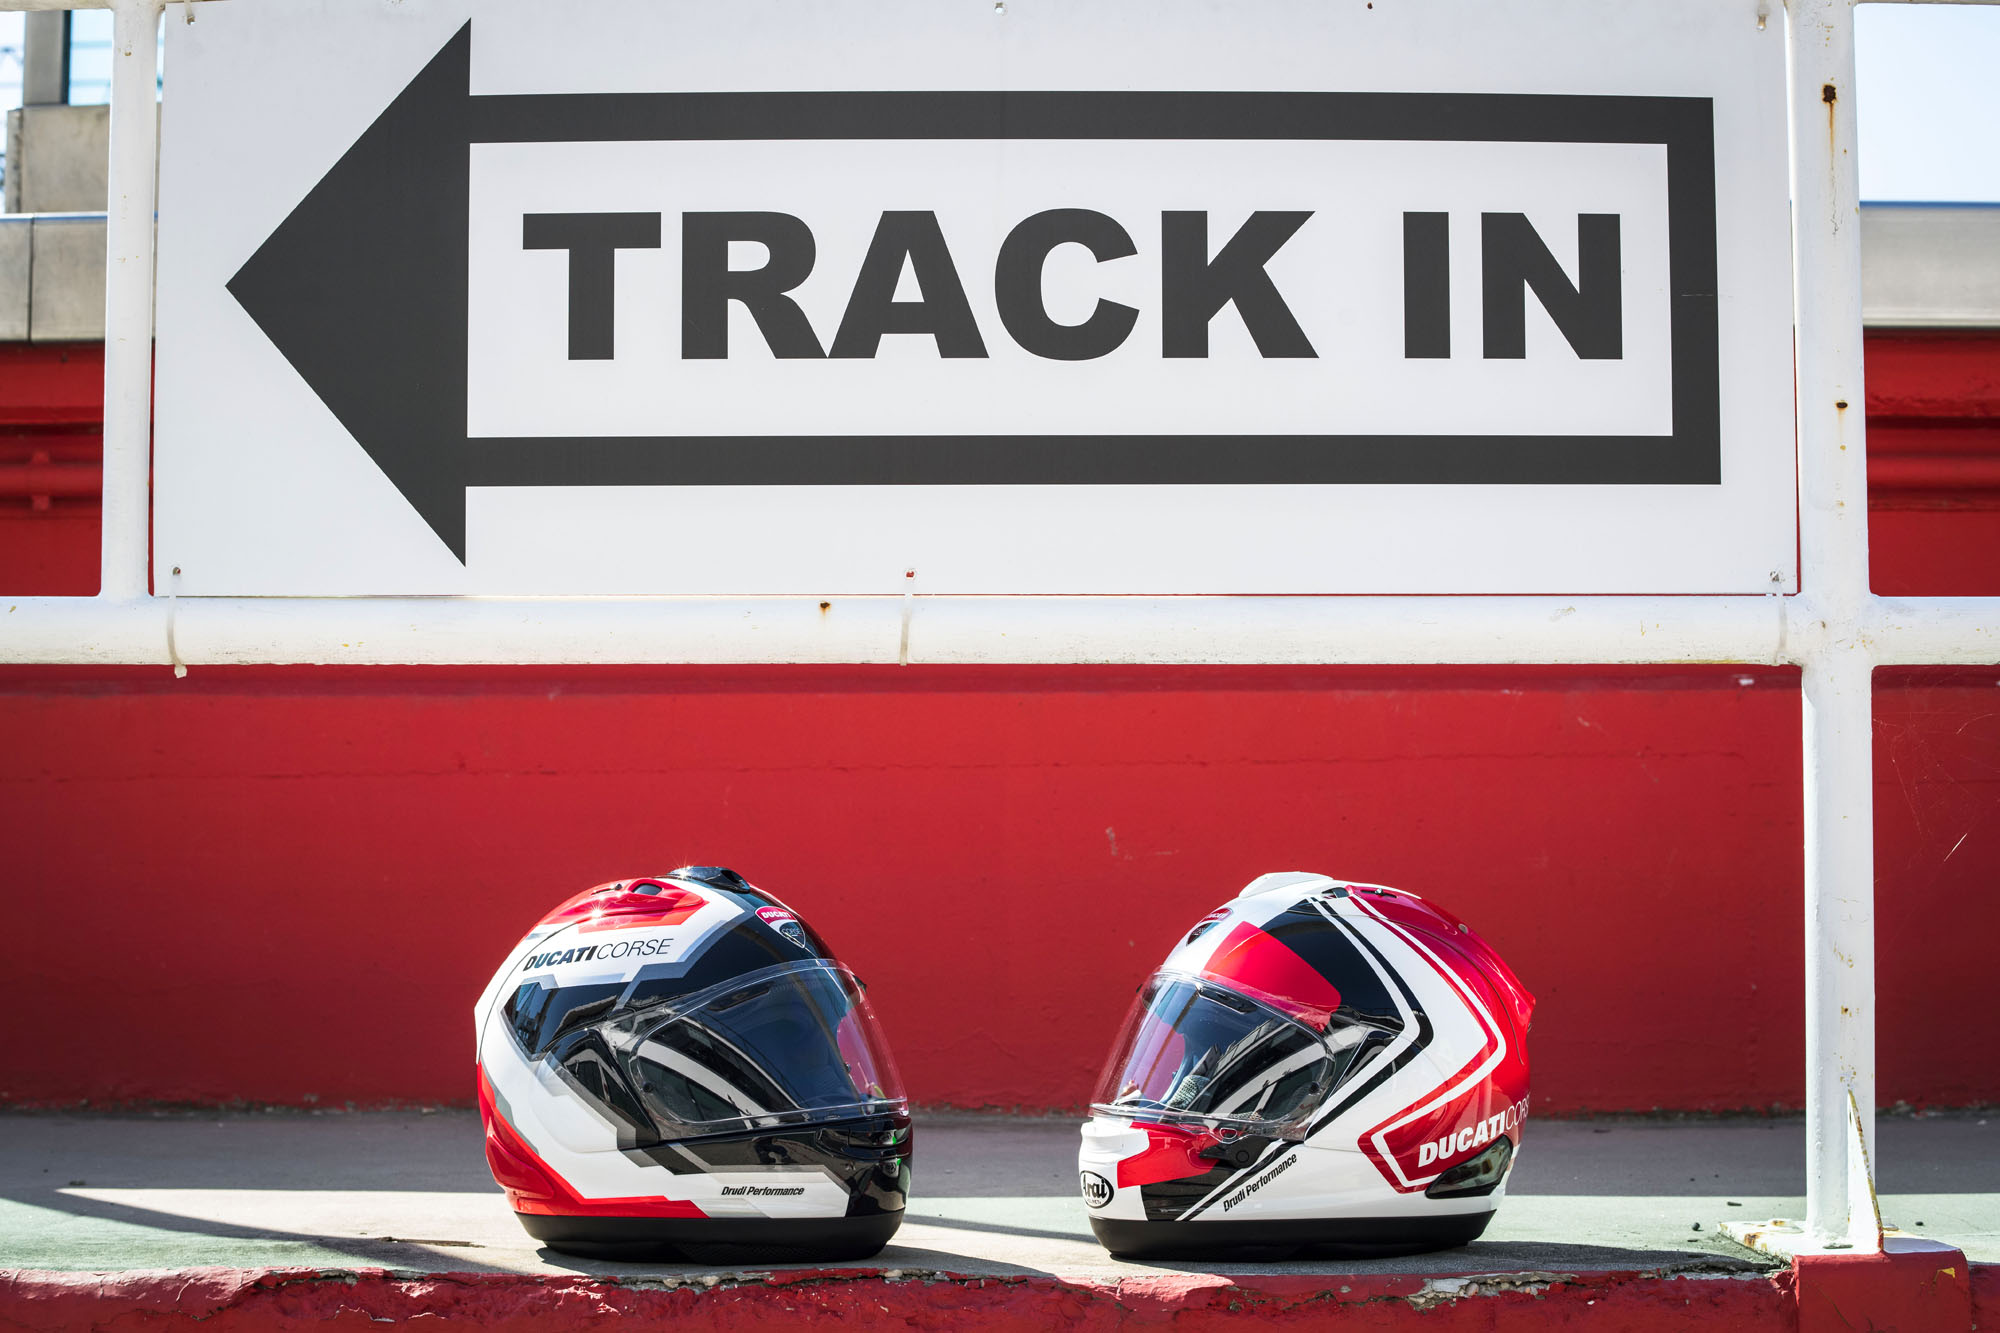 Ducati_Apparel racing performance wear_DC V5 Helmet_UC215263_High